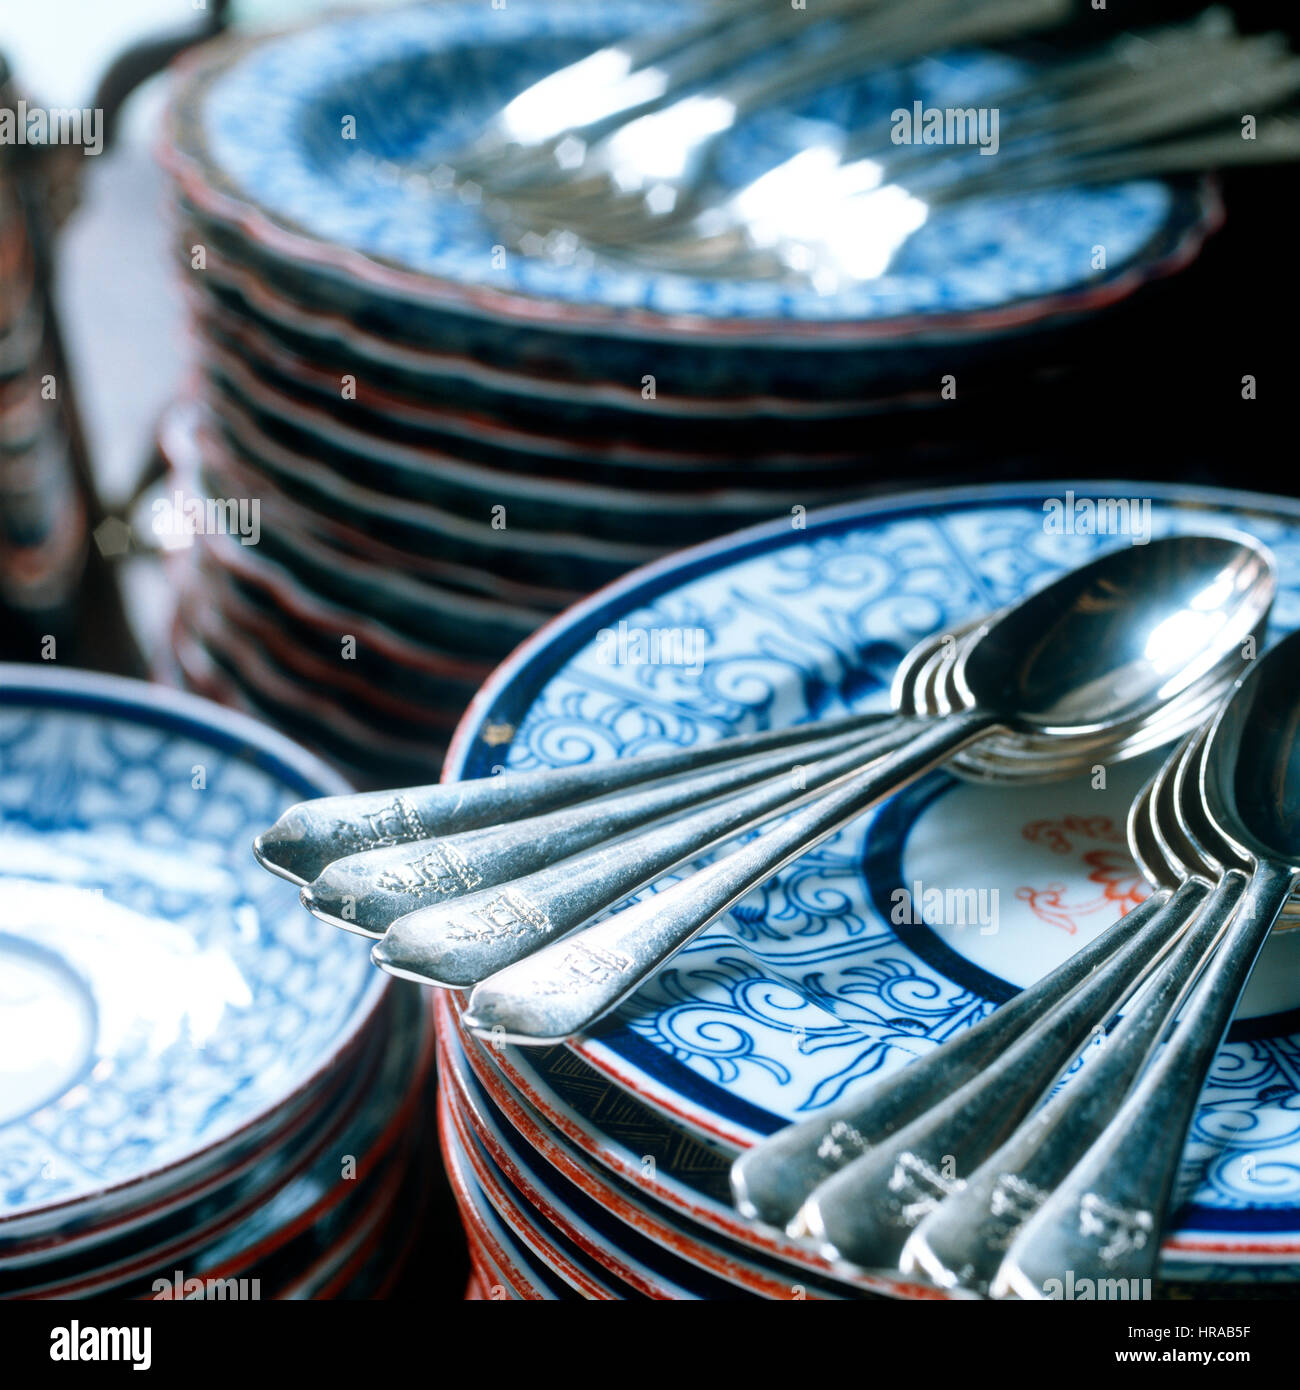 Silver teaspoons engraved with family crest on blue and white plates - Stock Image